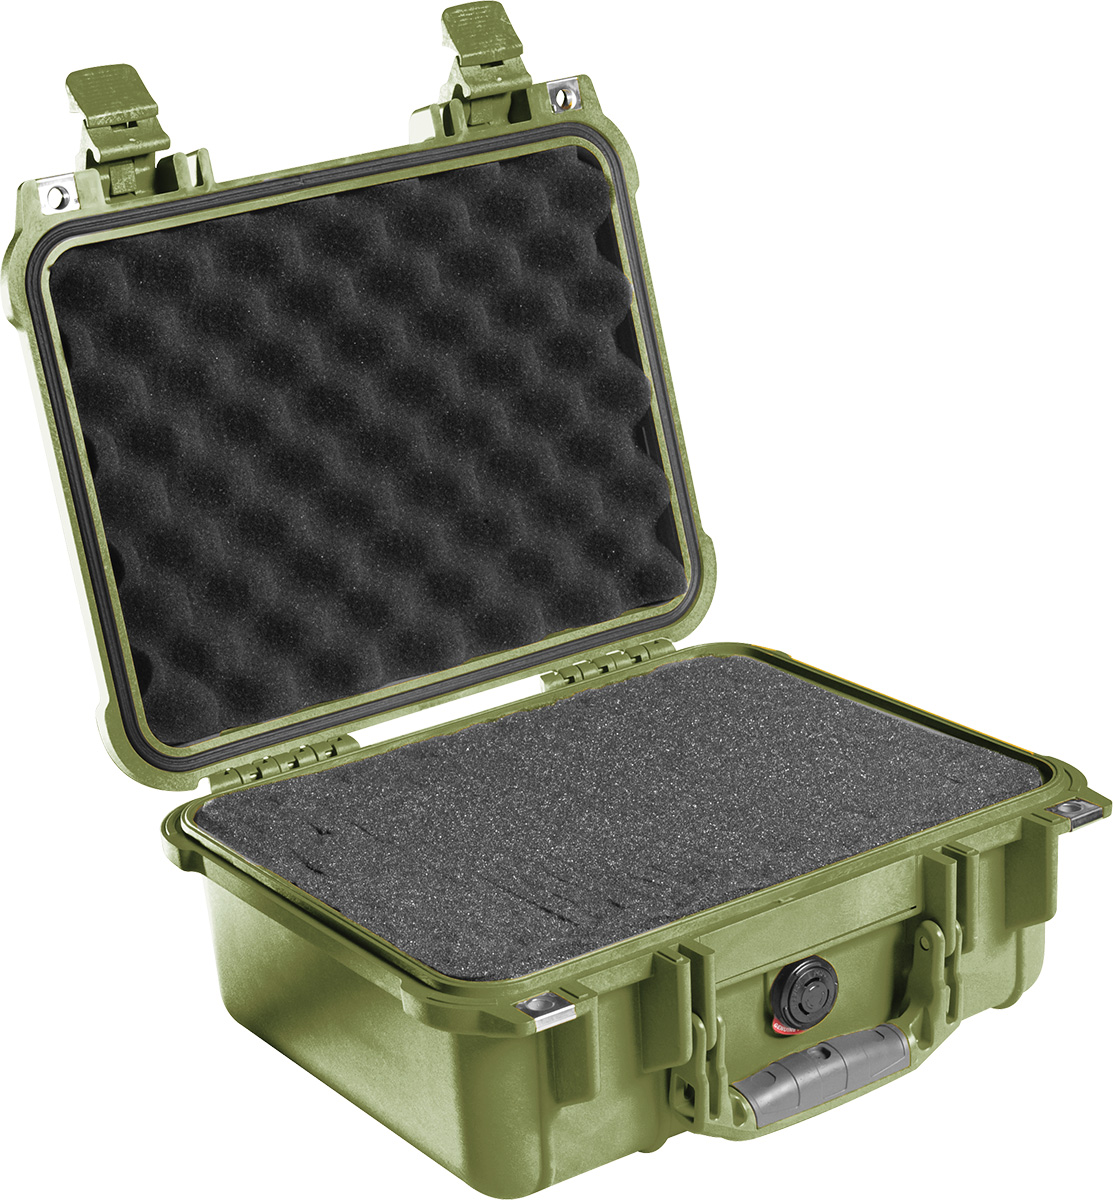 pelican 1400 green extreme environmental case